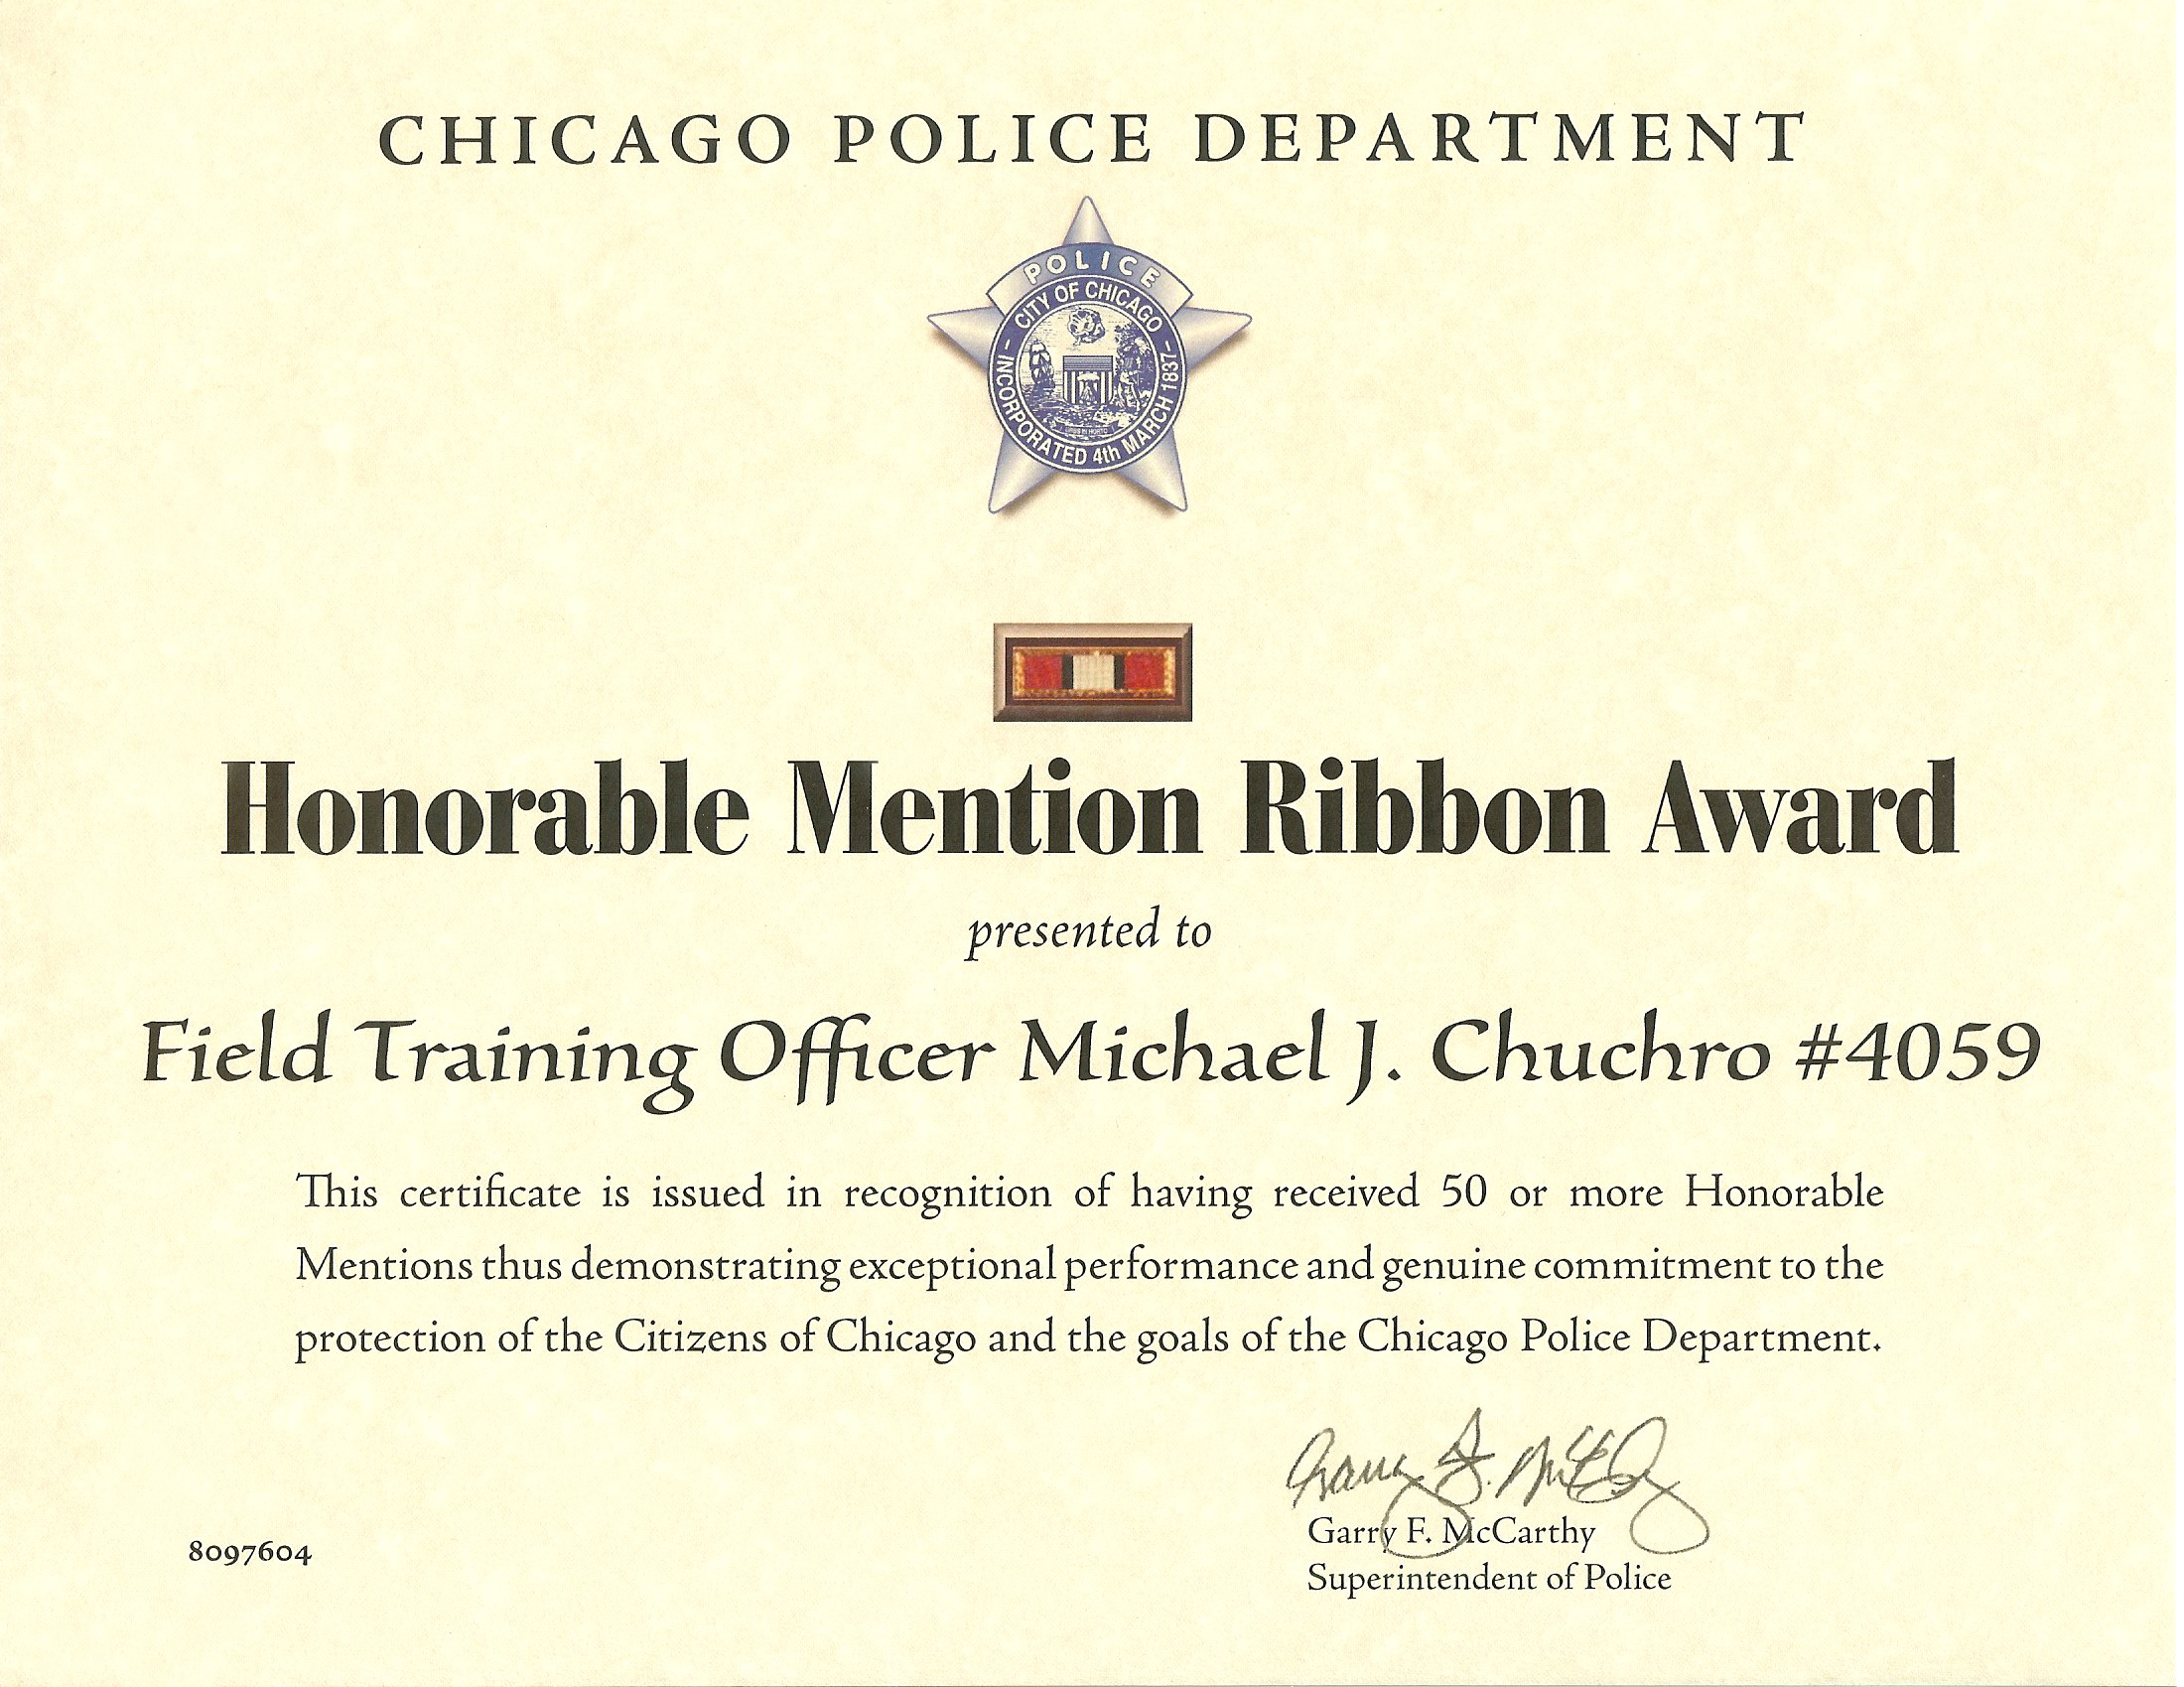 Honorable Mention Ribbon Award Certificate